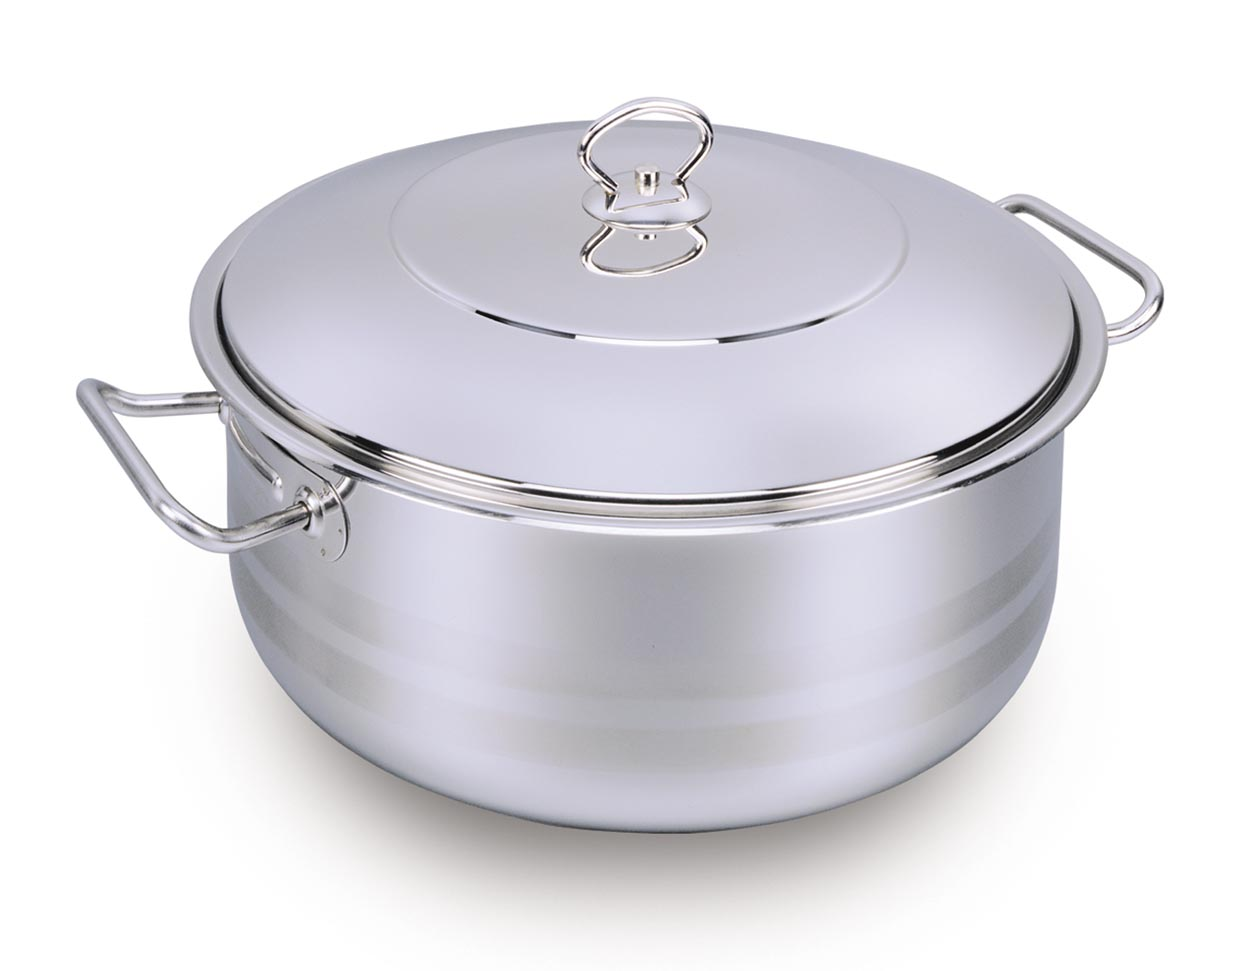 YBH Home A1945 Astra 16 Quart Casserole Dutch Oven With Lid